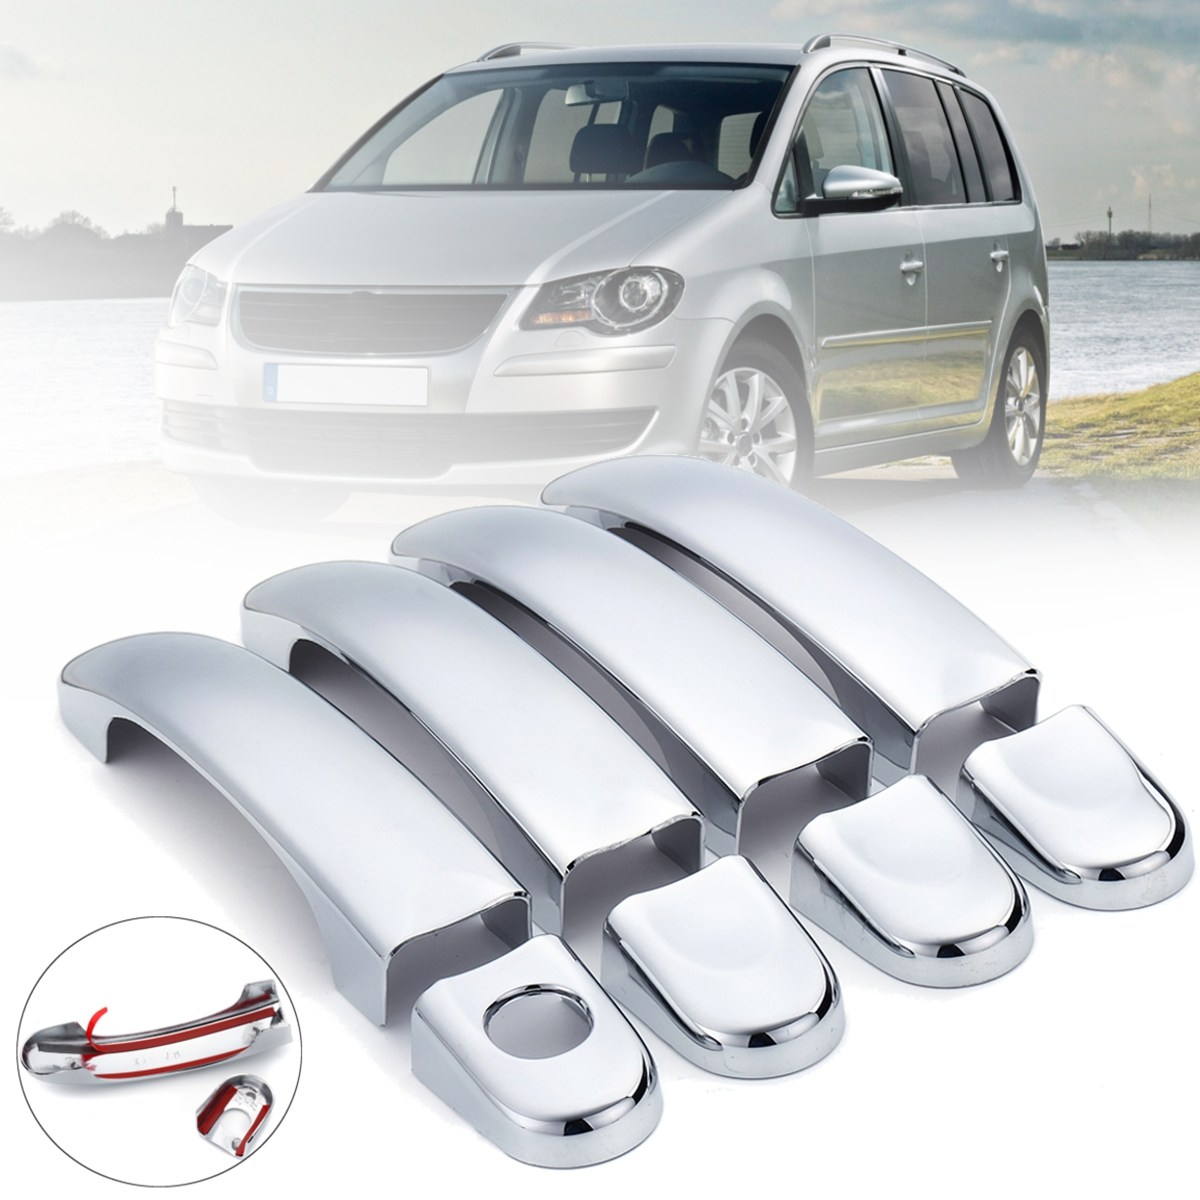 8pcs abs chrome door handle covers trim for vw touran. Black Bedroom Furniture Sets. Home Design Ideas